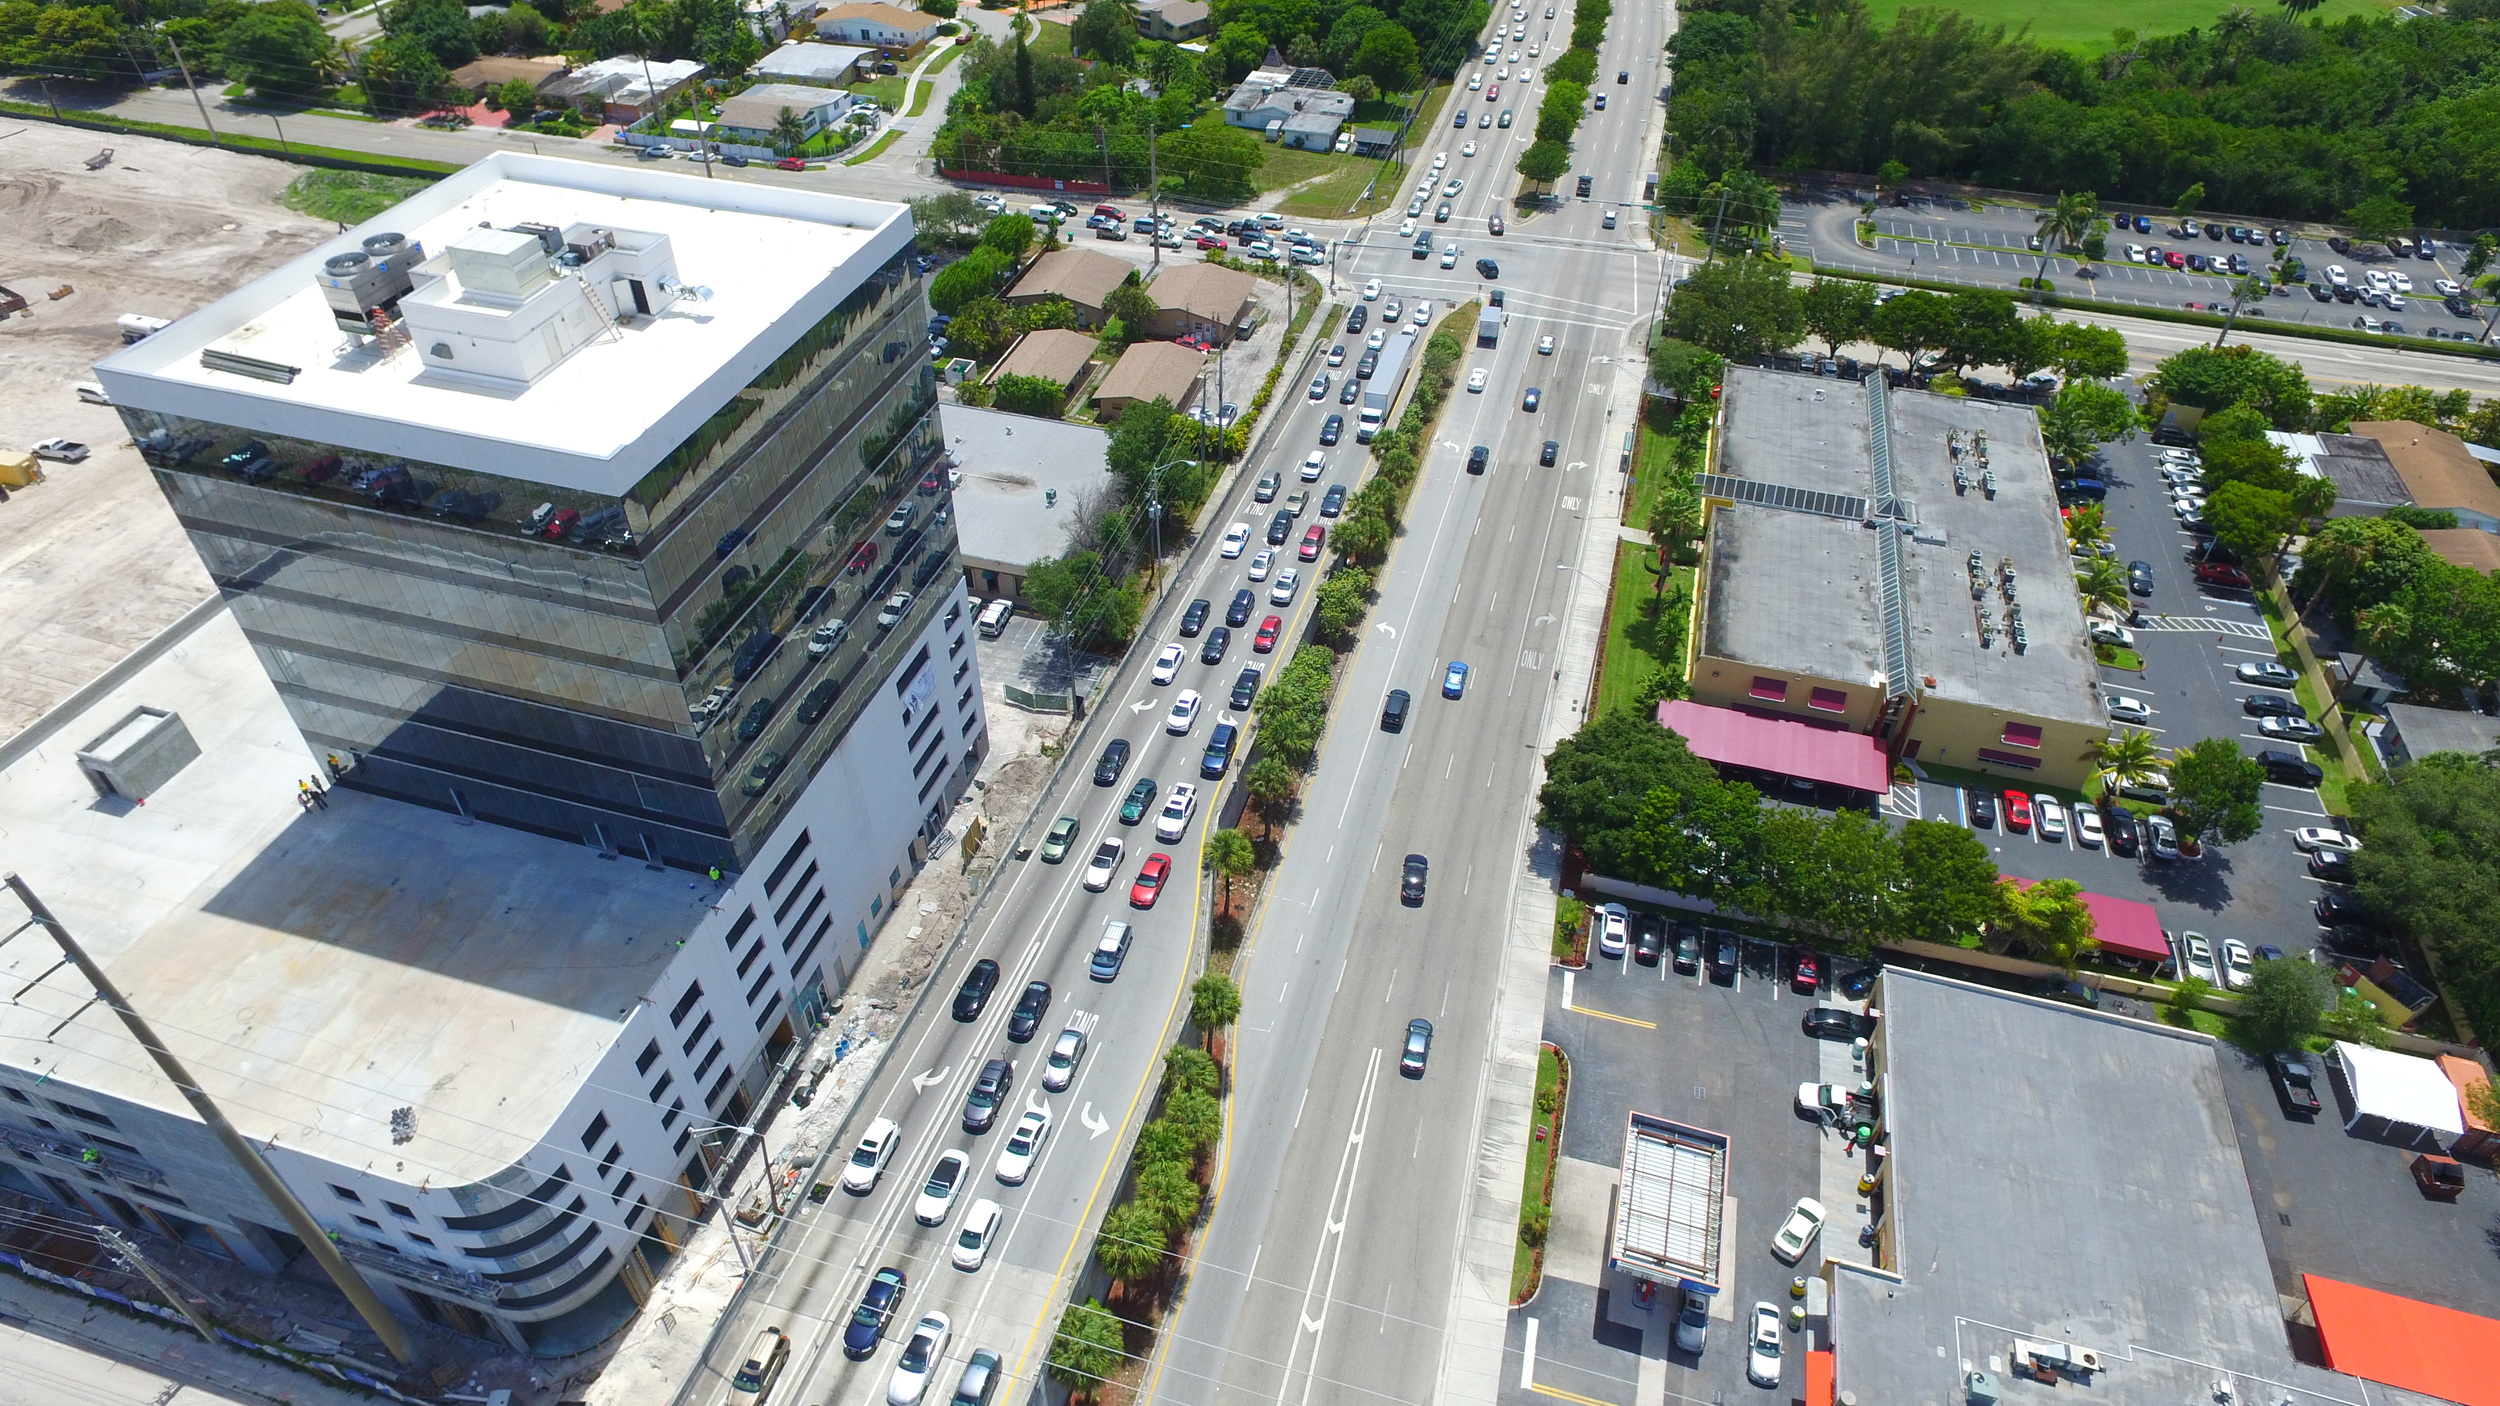 Traffic on Ives Dairy Rd by Beacon Tower of Aventura.